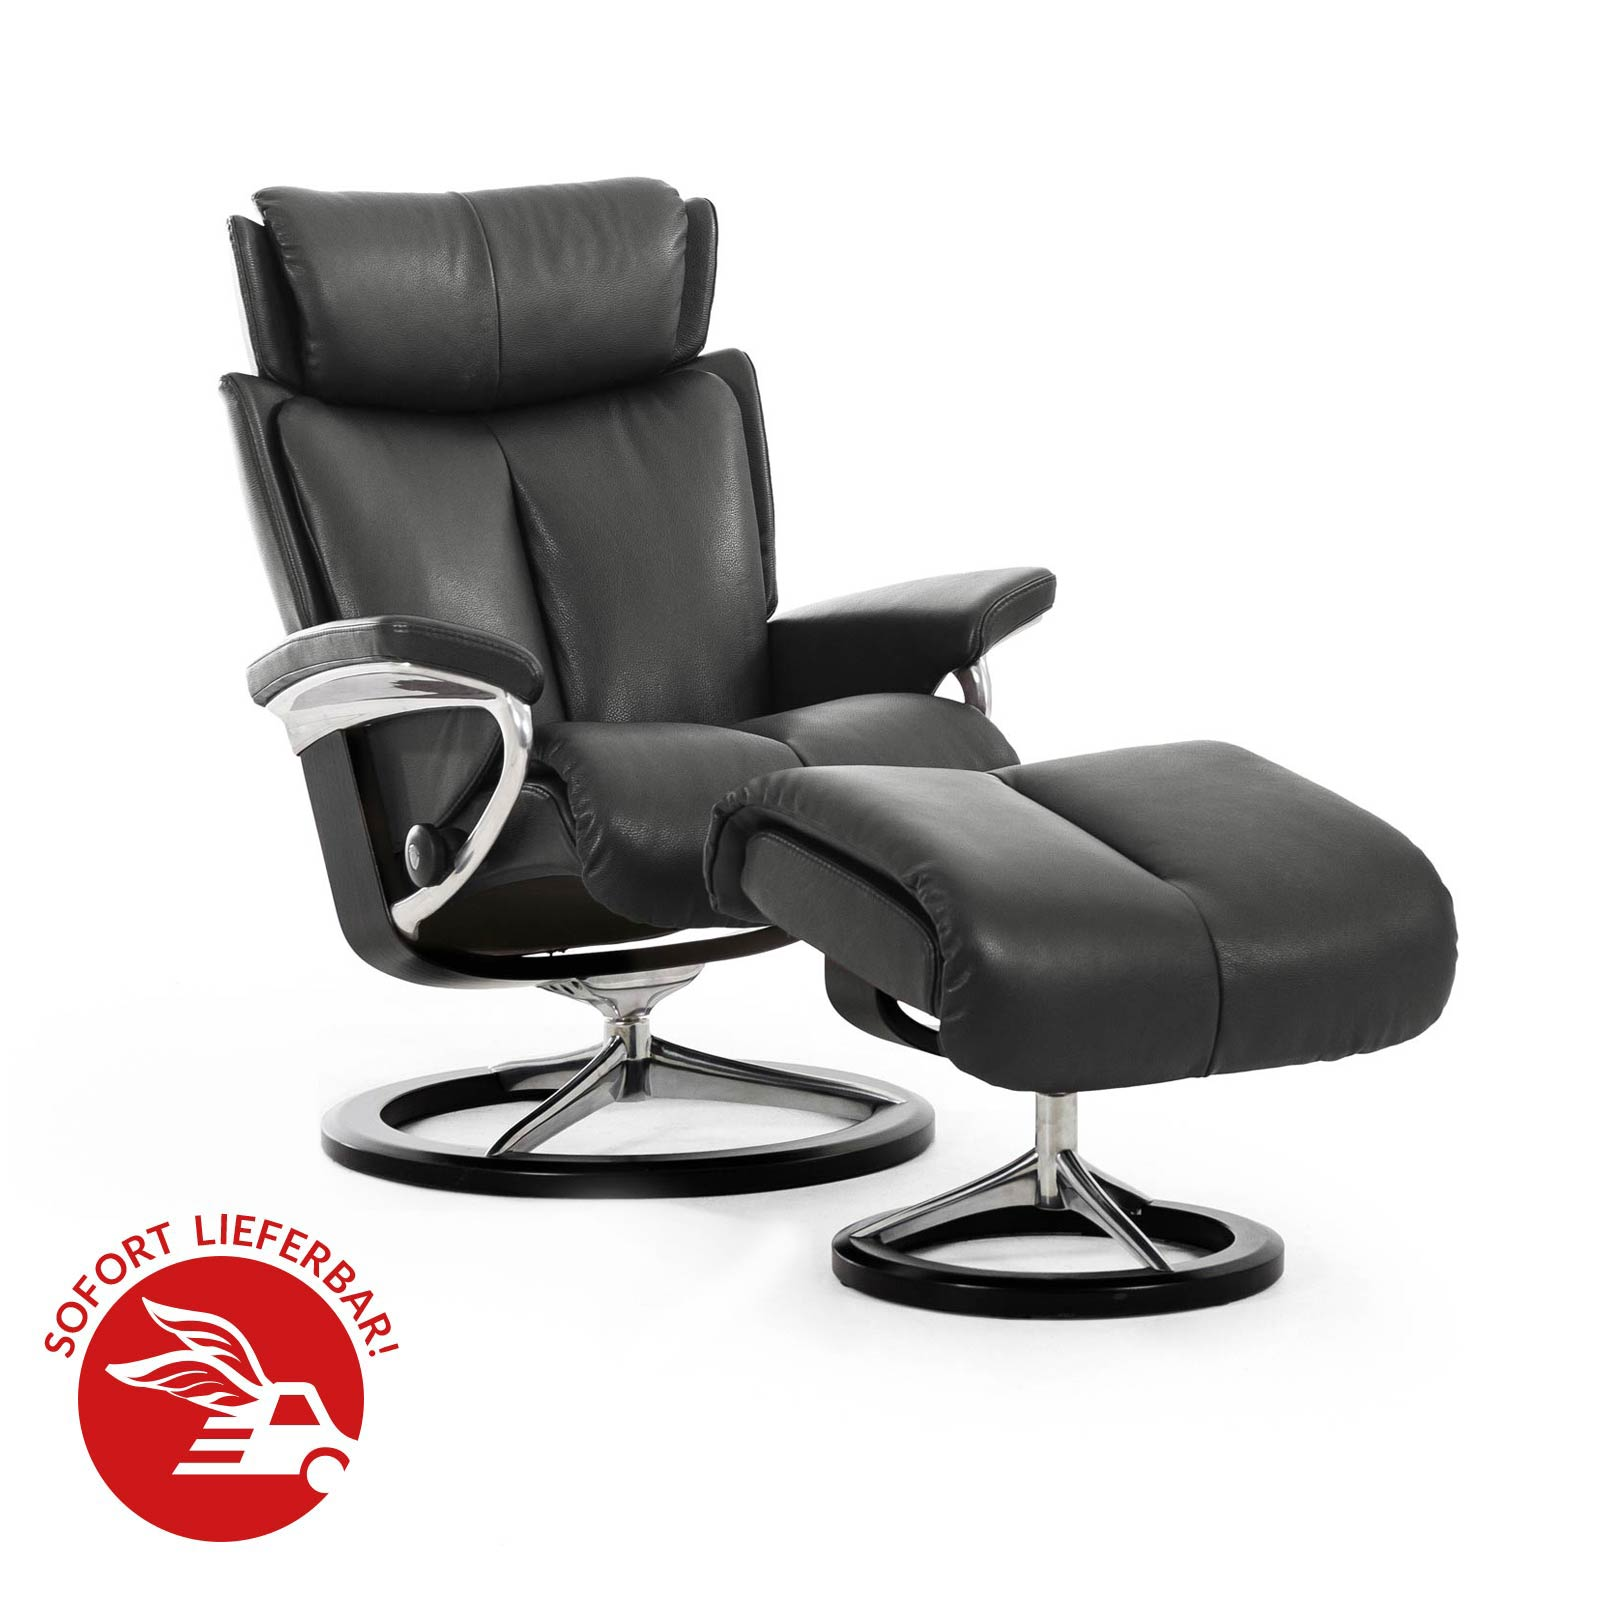 Stressless Sessel Inkl. Hocker Modell Sunrise (m) Classic Stressless Sessel Aura